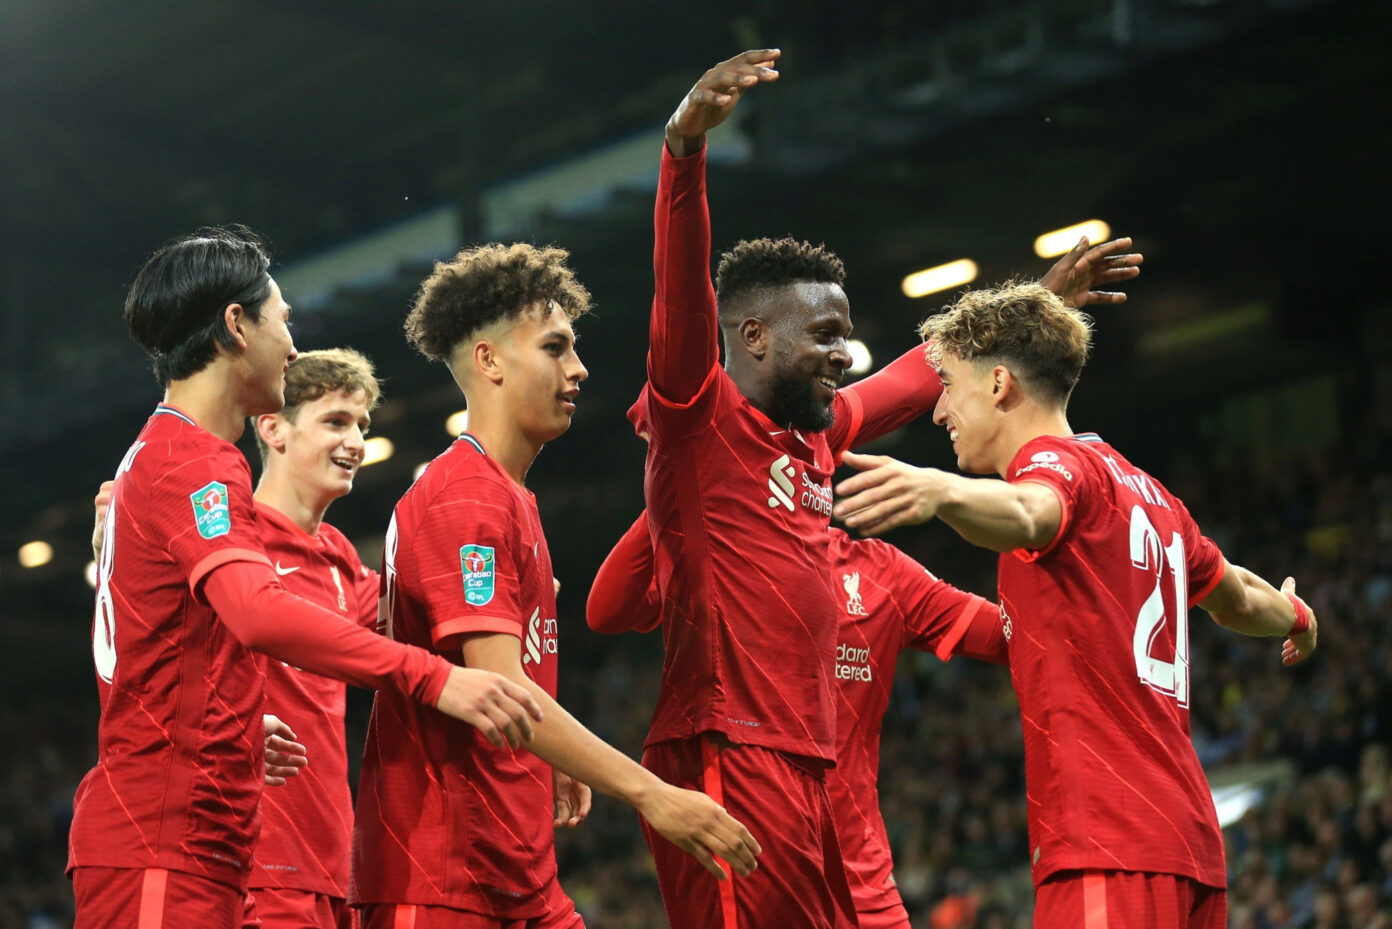 Norwich City 0-3 Liverpool - Watch the goals and highlights (Video)